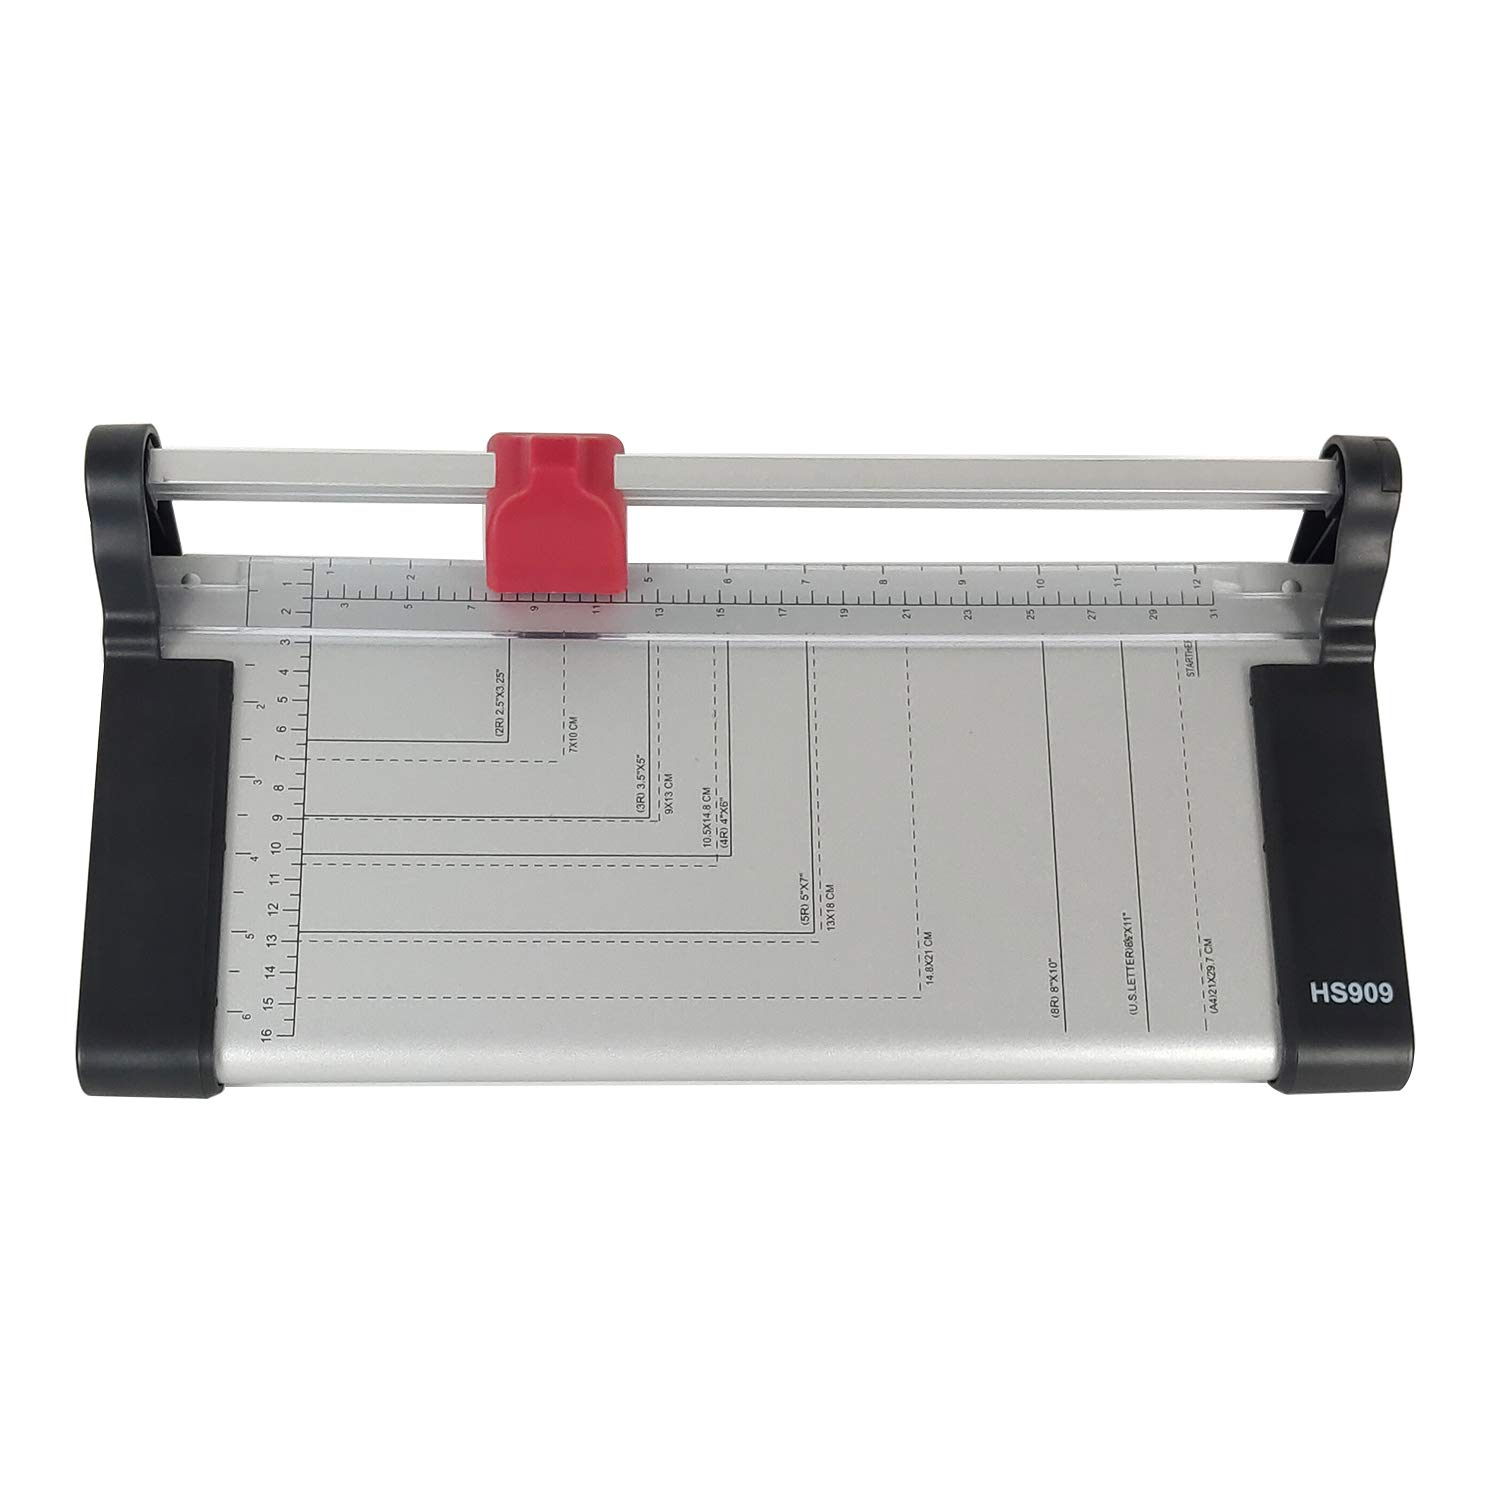 Rayson HS909A4 Paper Cutter Trimmer 12 Inch Length Cutter 8 Sheets Capacity Cutting Straight Lines by RAYSON